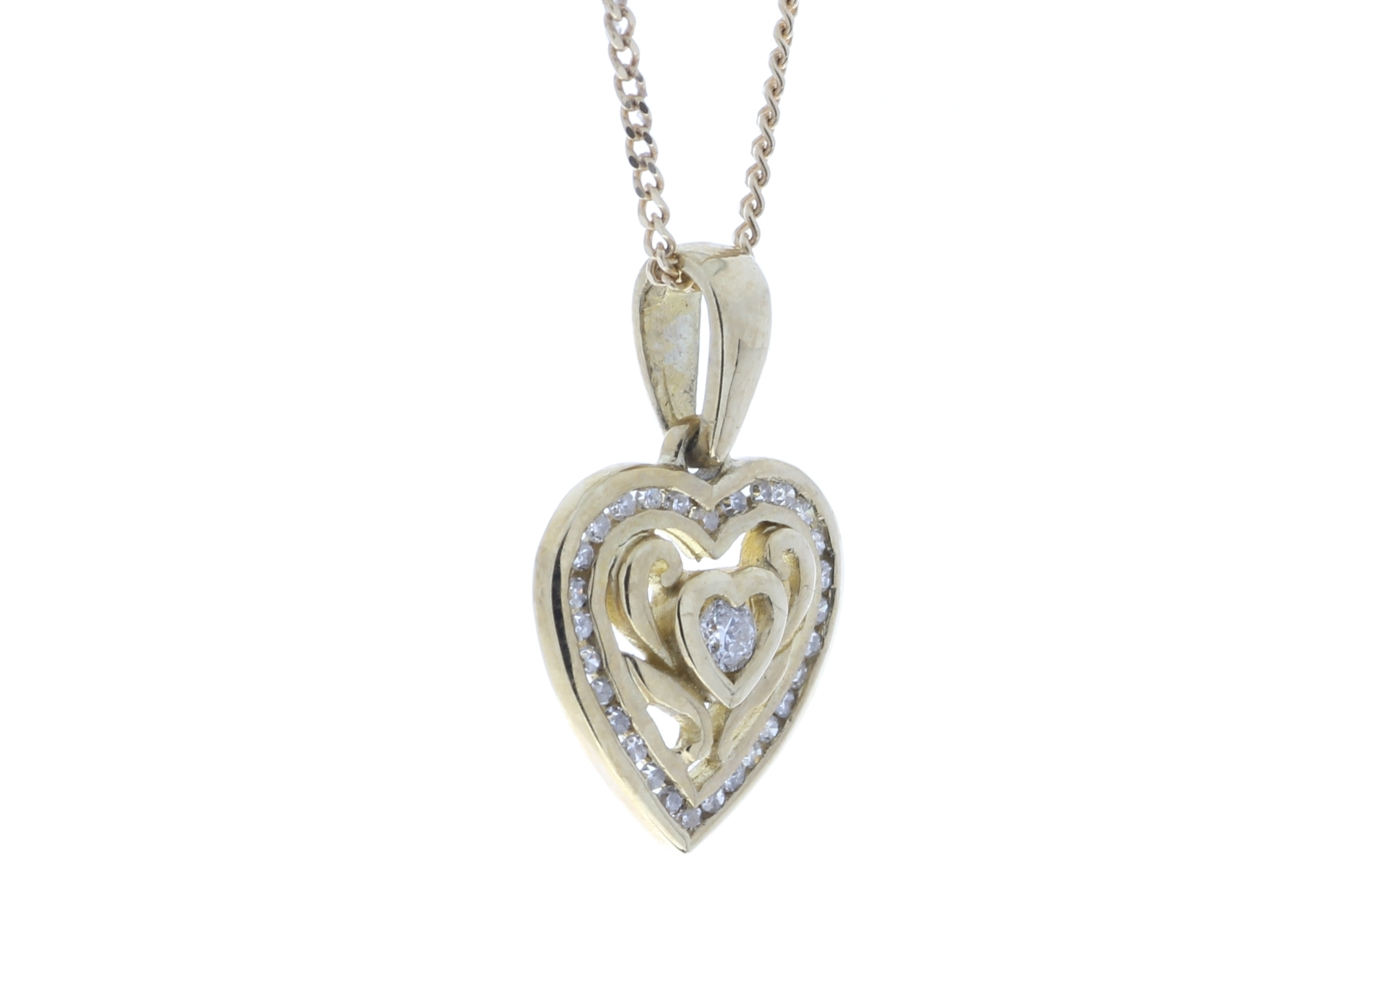 Lot 46 - 9ct Yellow Gold Heart Pendant Set With Diamonds With Centre Heart and Swirls 0.18 Carats